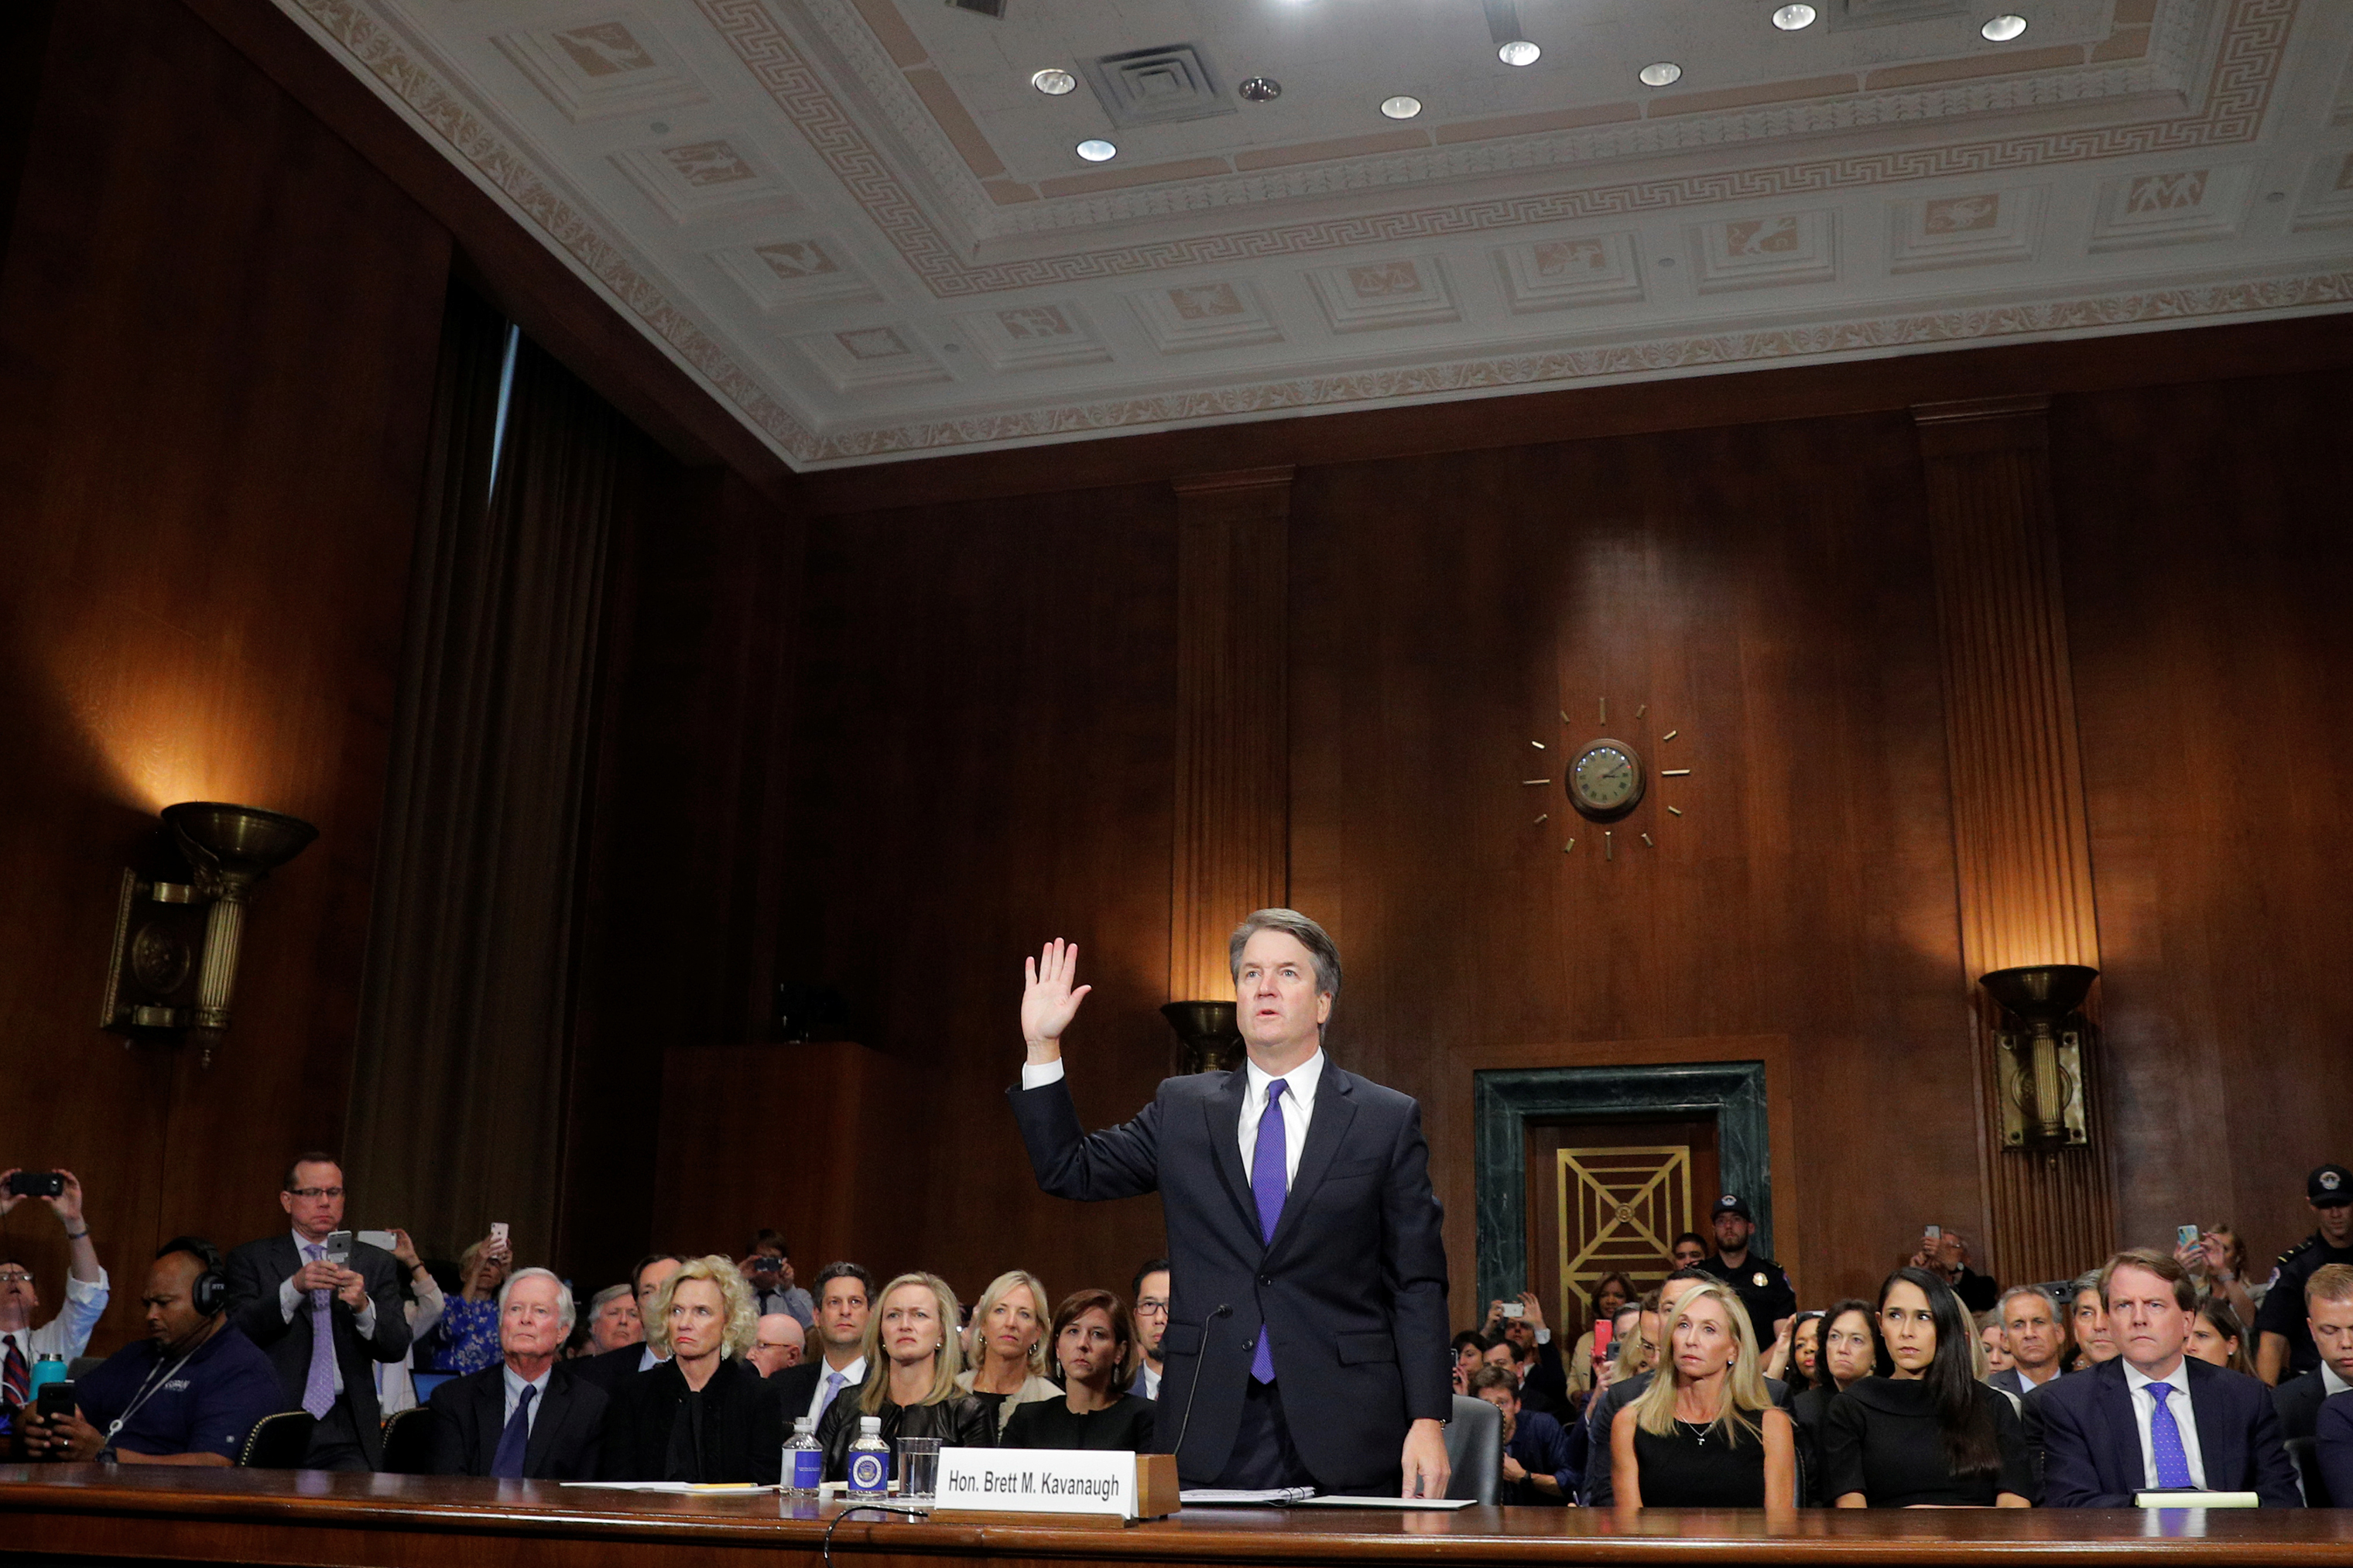 Judge Brett Kavanaugh is sworn in to testify before the Senate Judiciary Committee on Sept. 27.